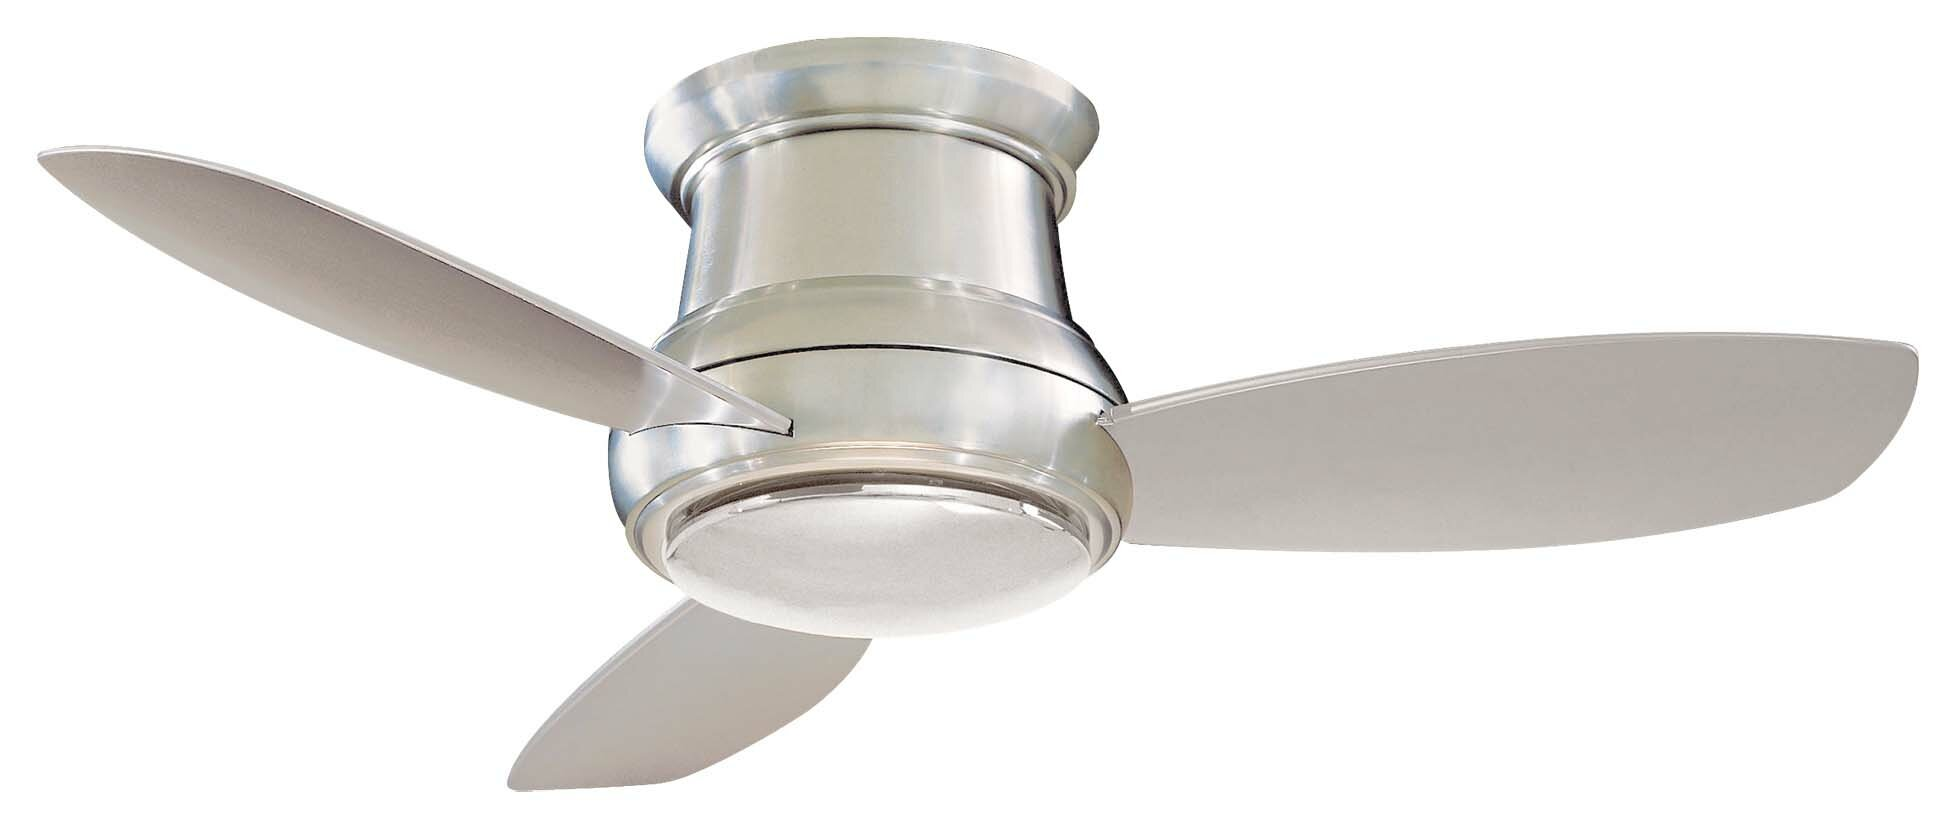 Ceiling Fan Led Assembly Ceiling Fans Ideas